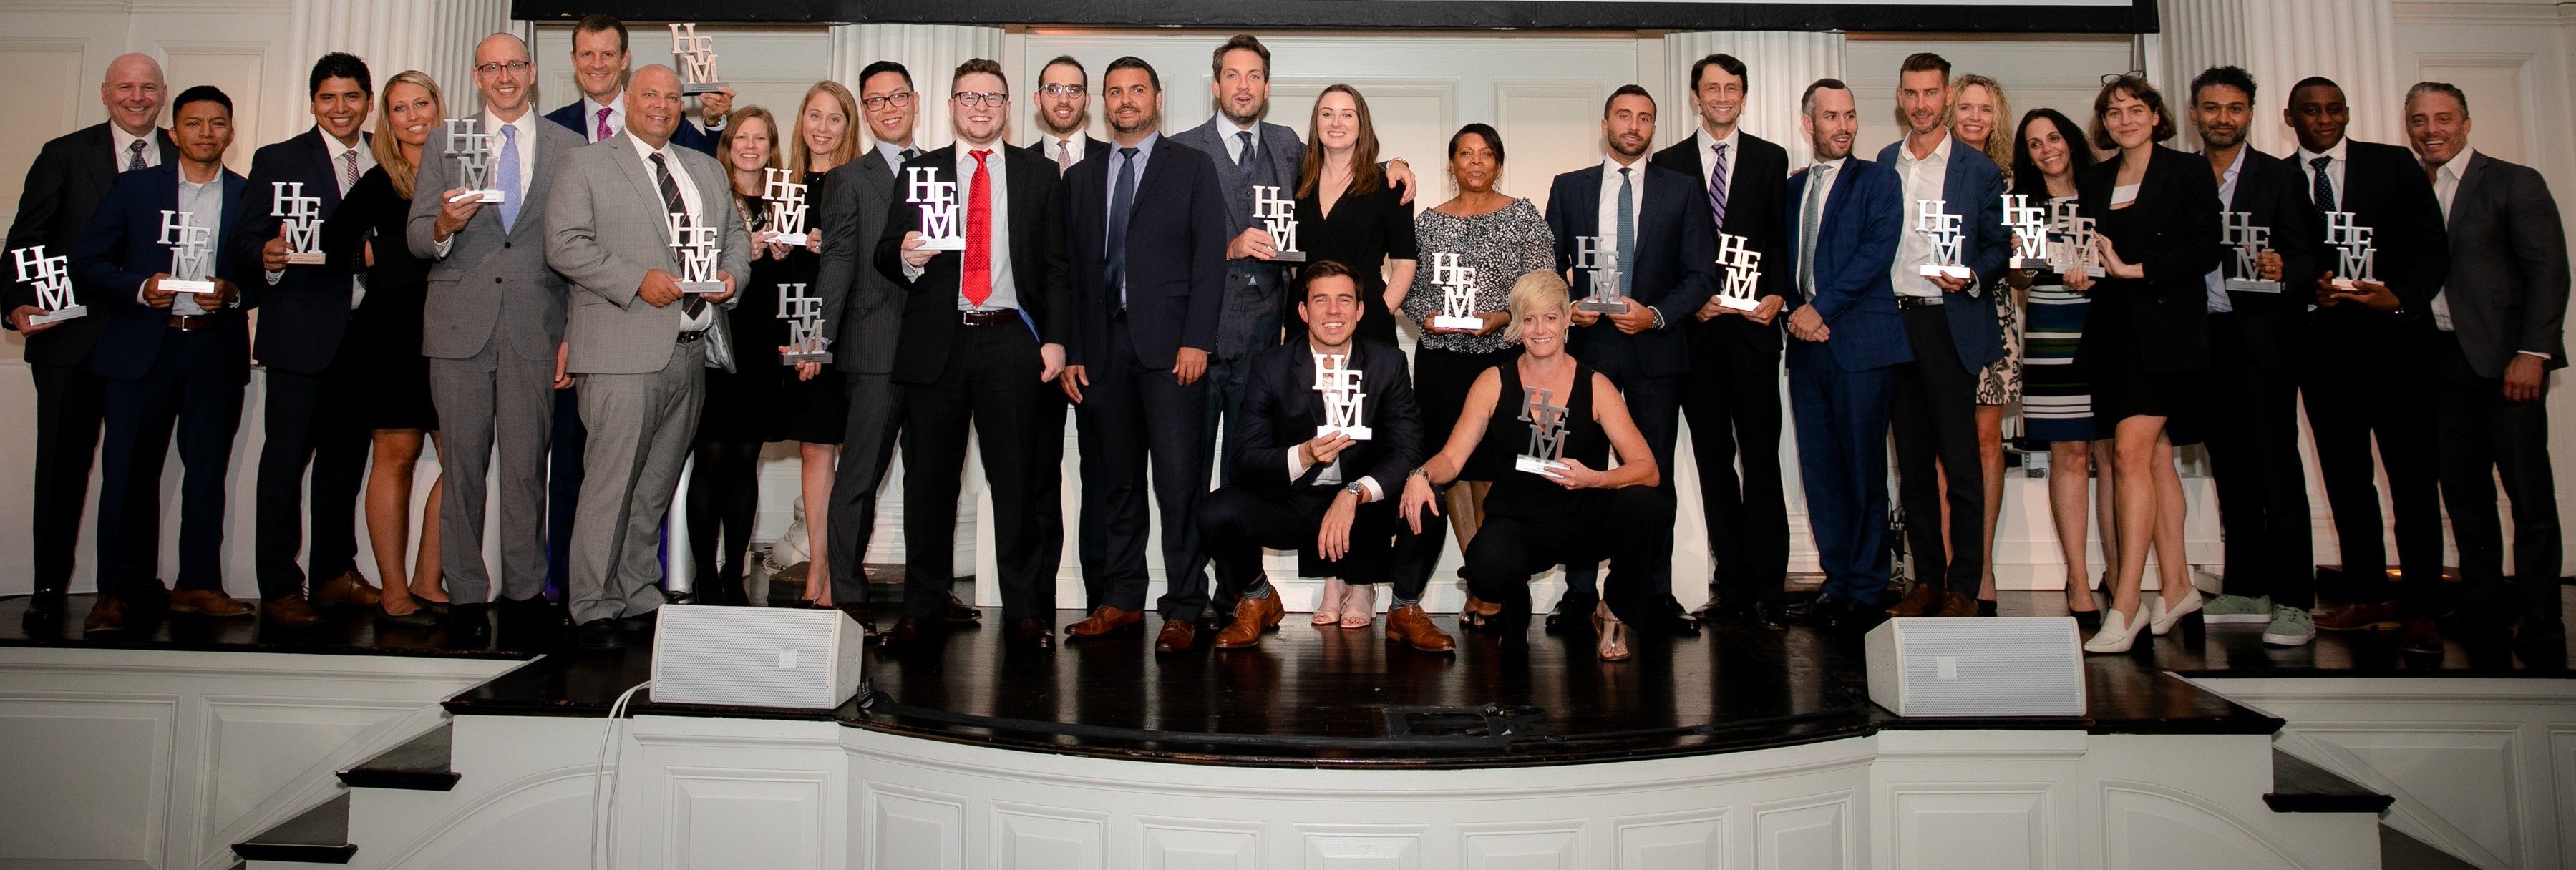 HFM US Services Awards 2019 - Winners